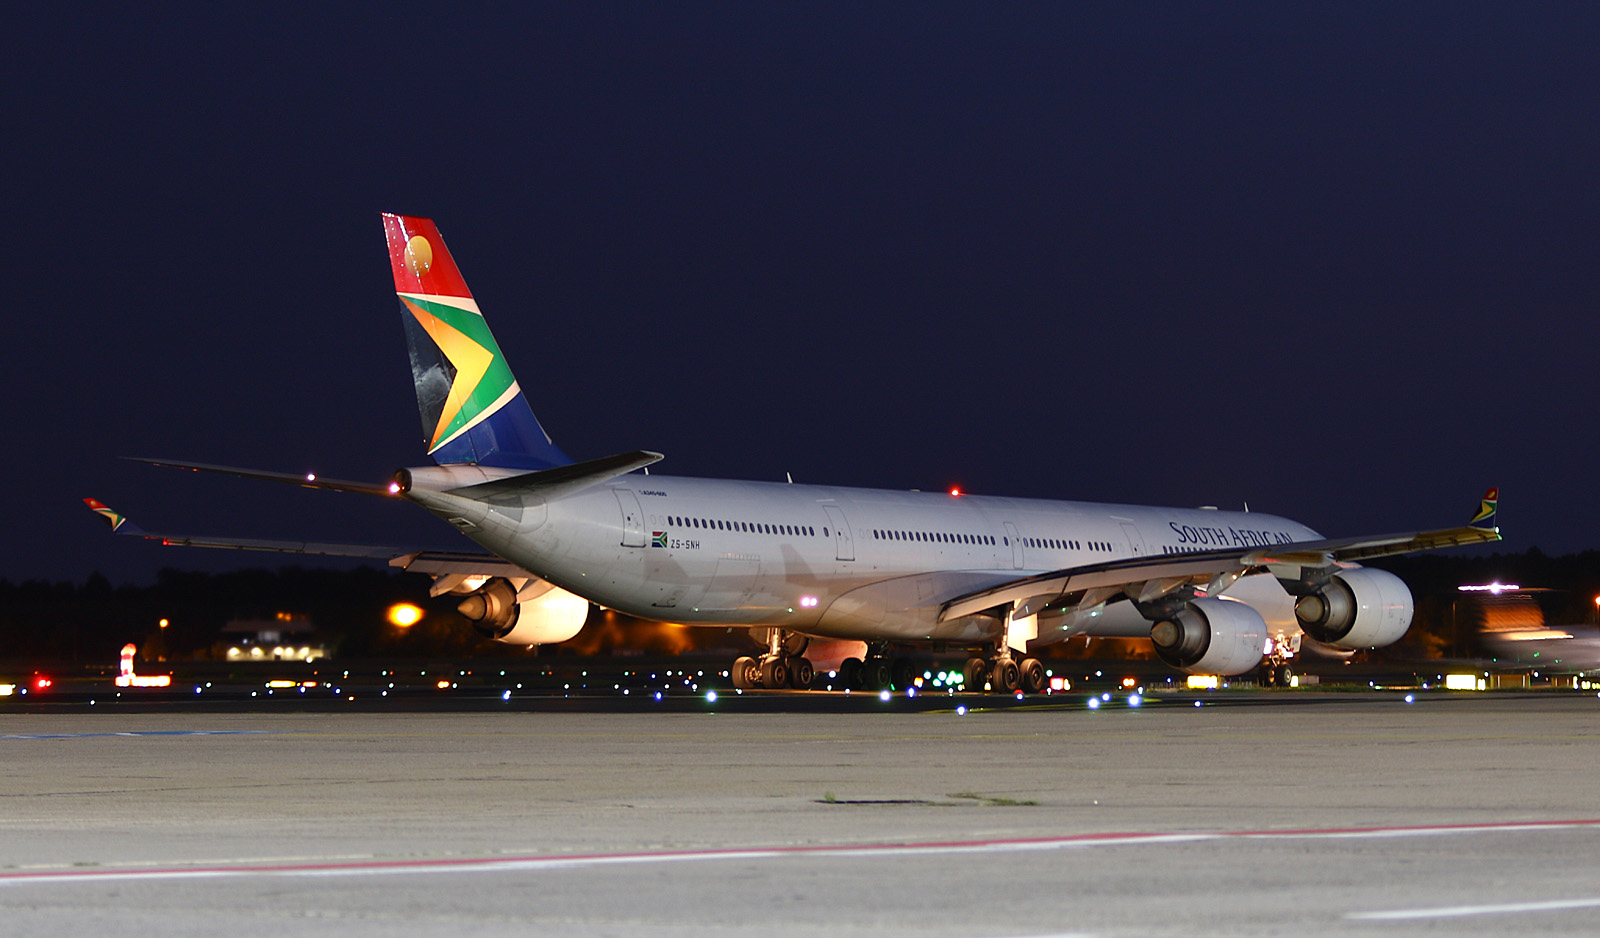 South African Airways Airbus A340-600 at Frankfurt